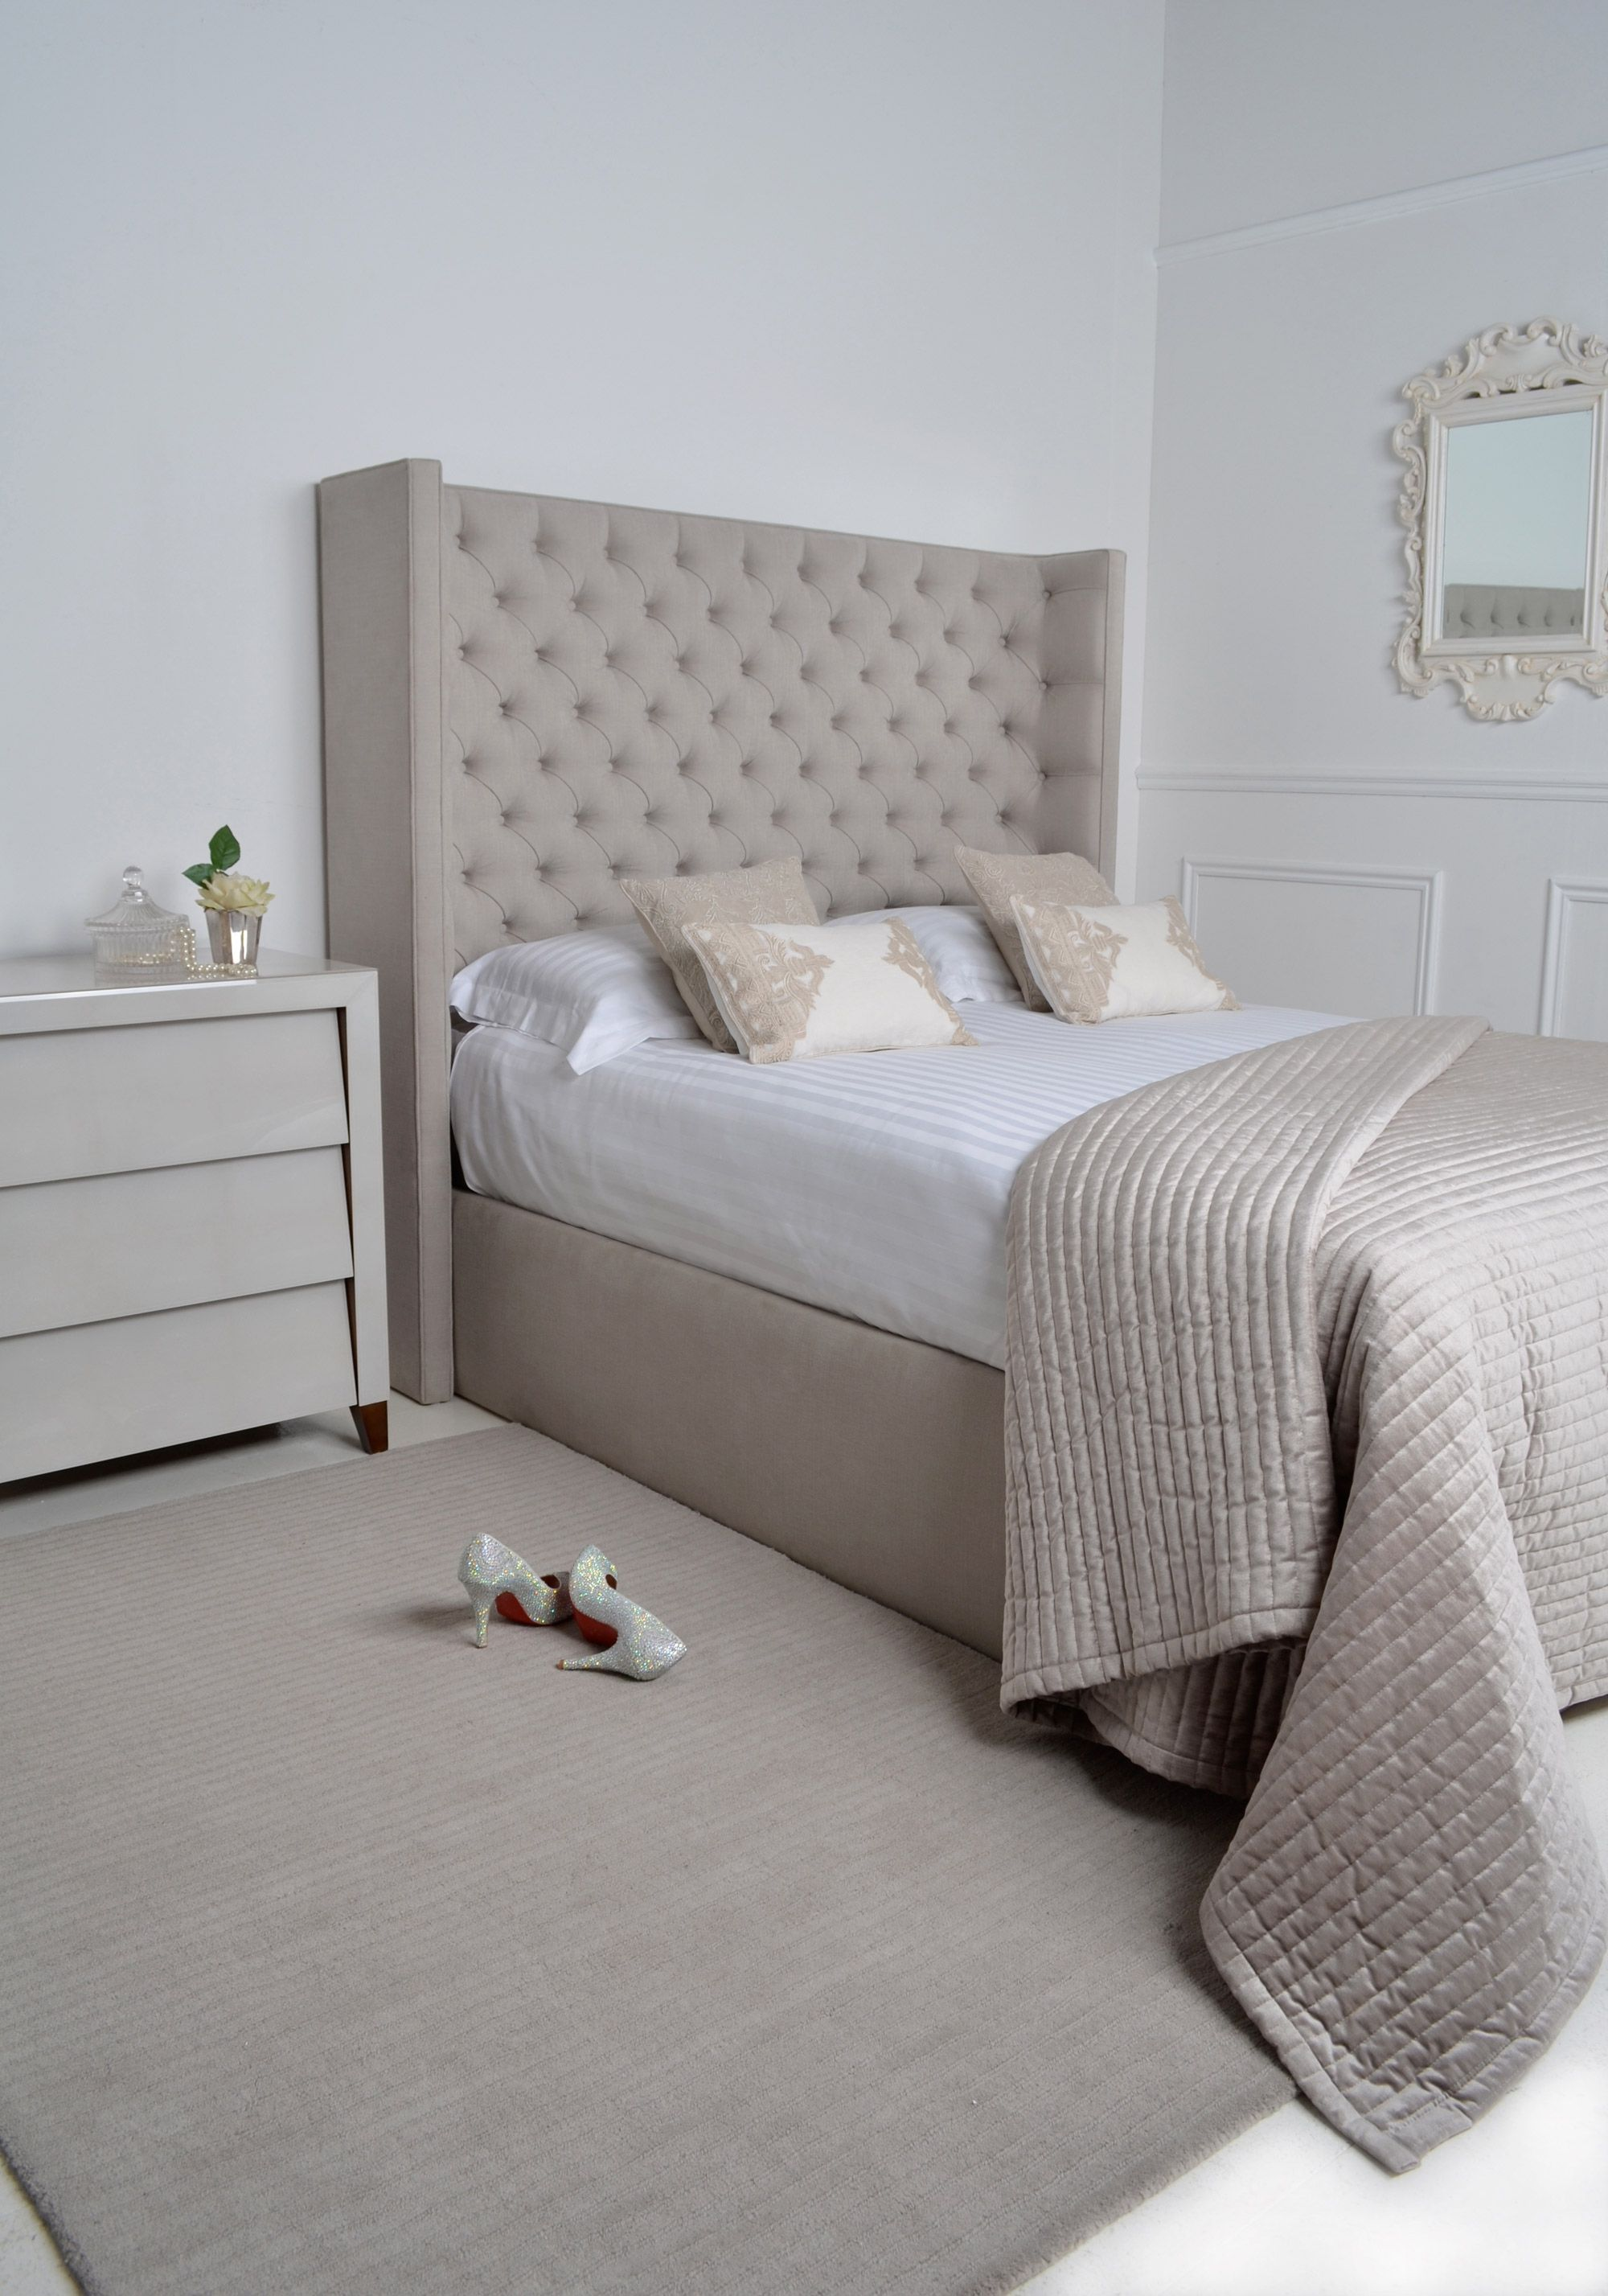 Laurent Bed hand made in Britain Upholstered beds, Bed